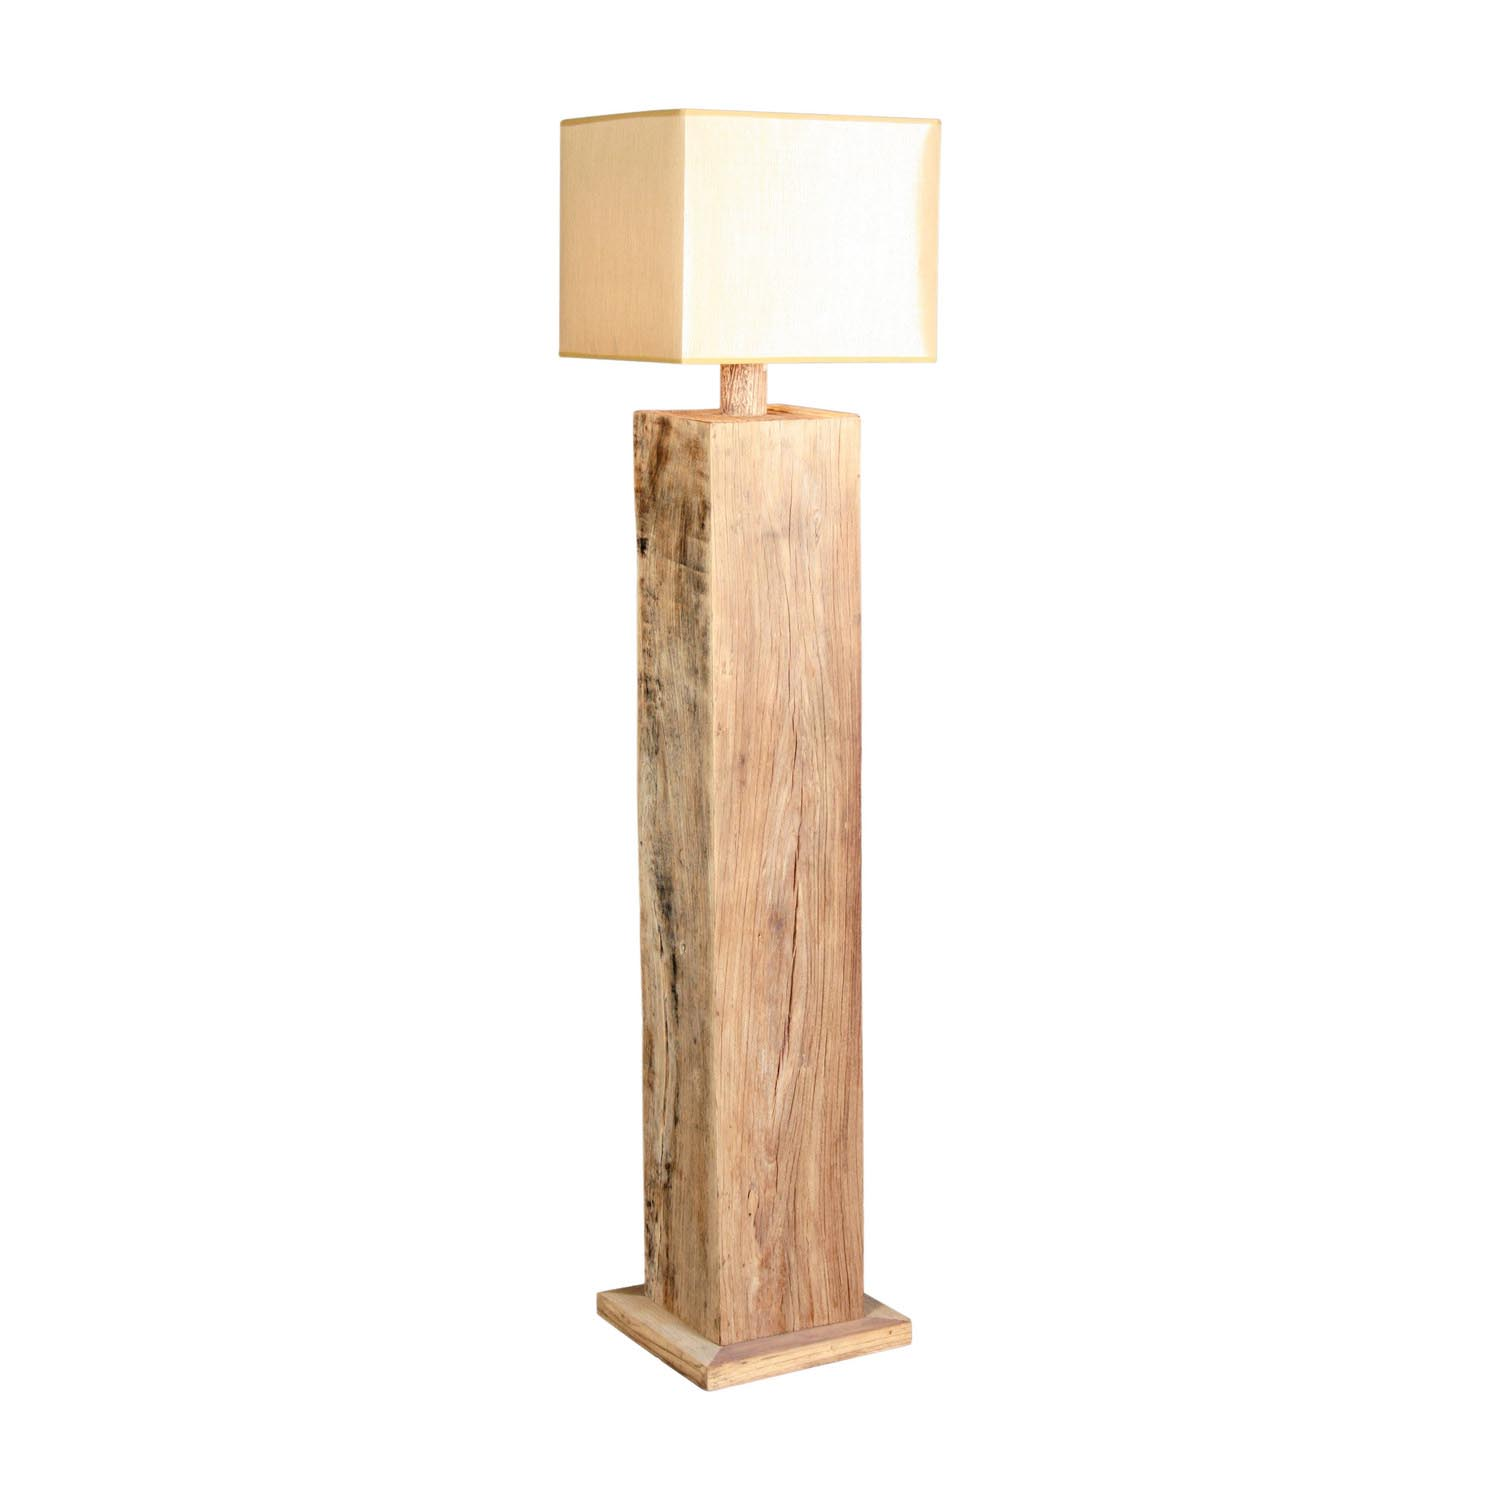 Wooden floor lamps ikea light fixtures design ideas Wood floor lamp